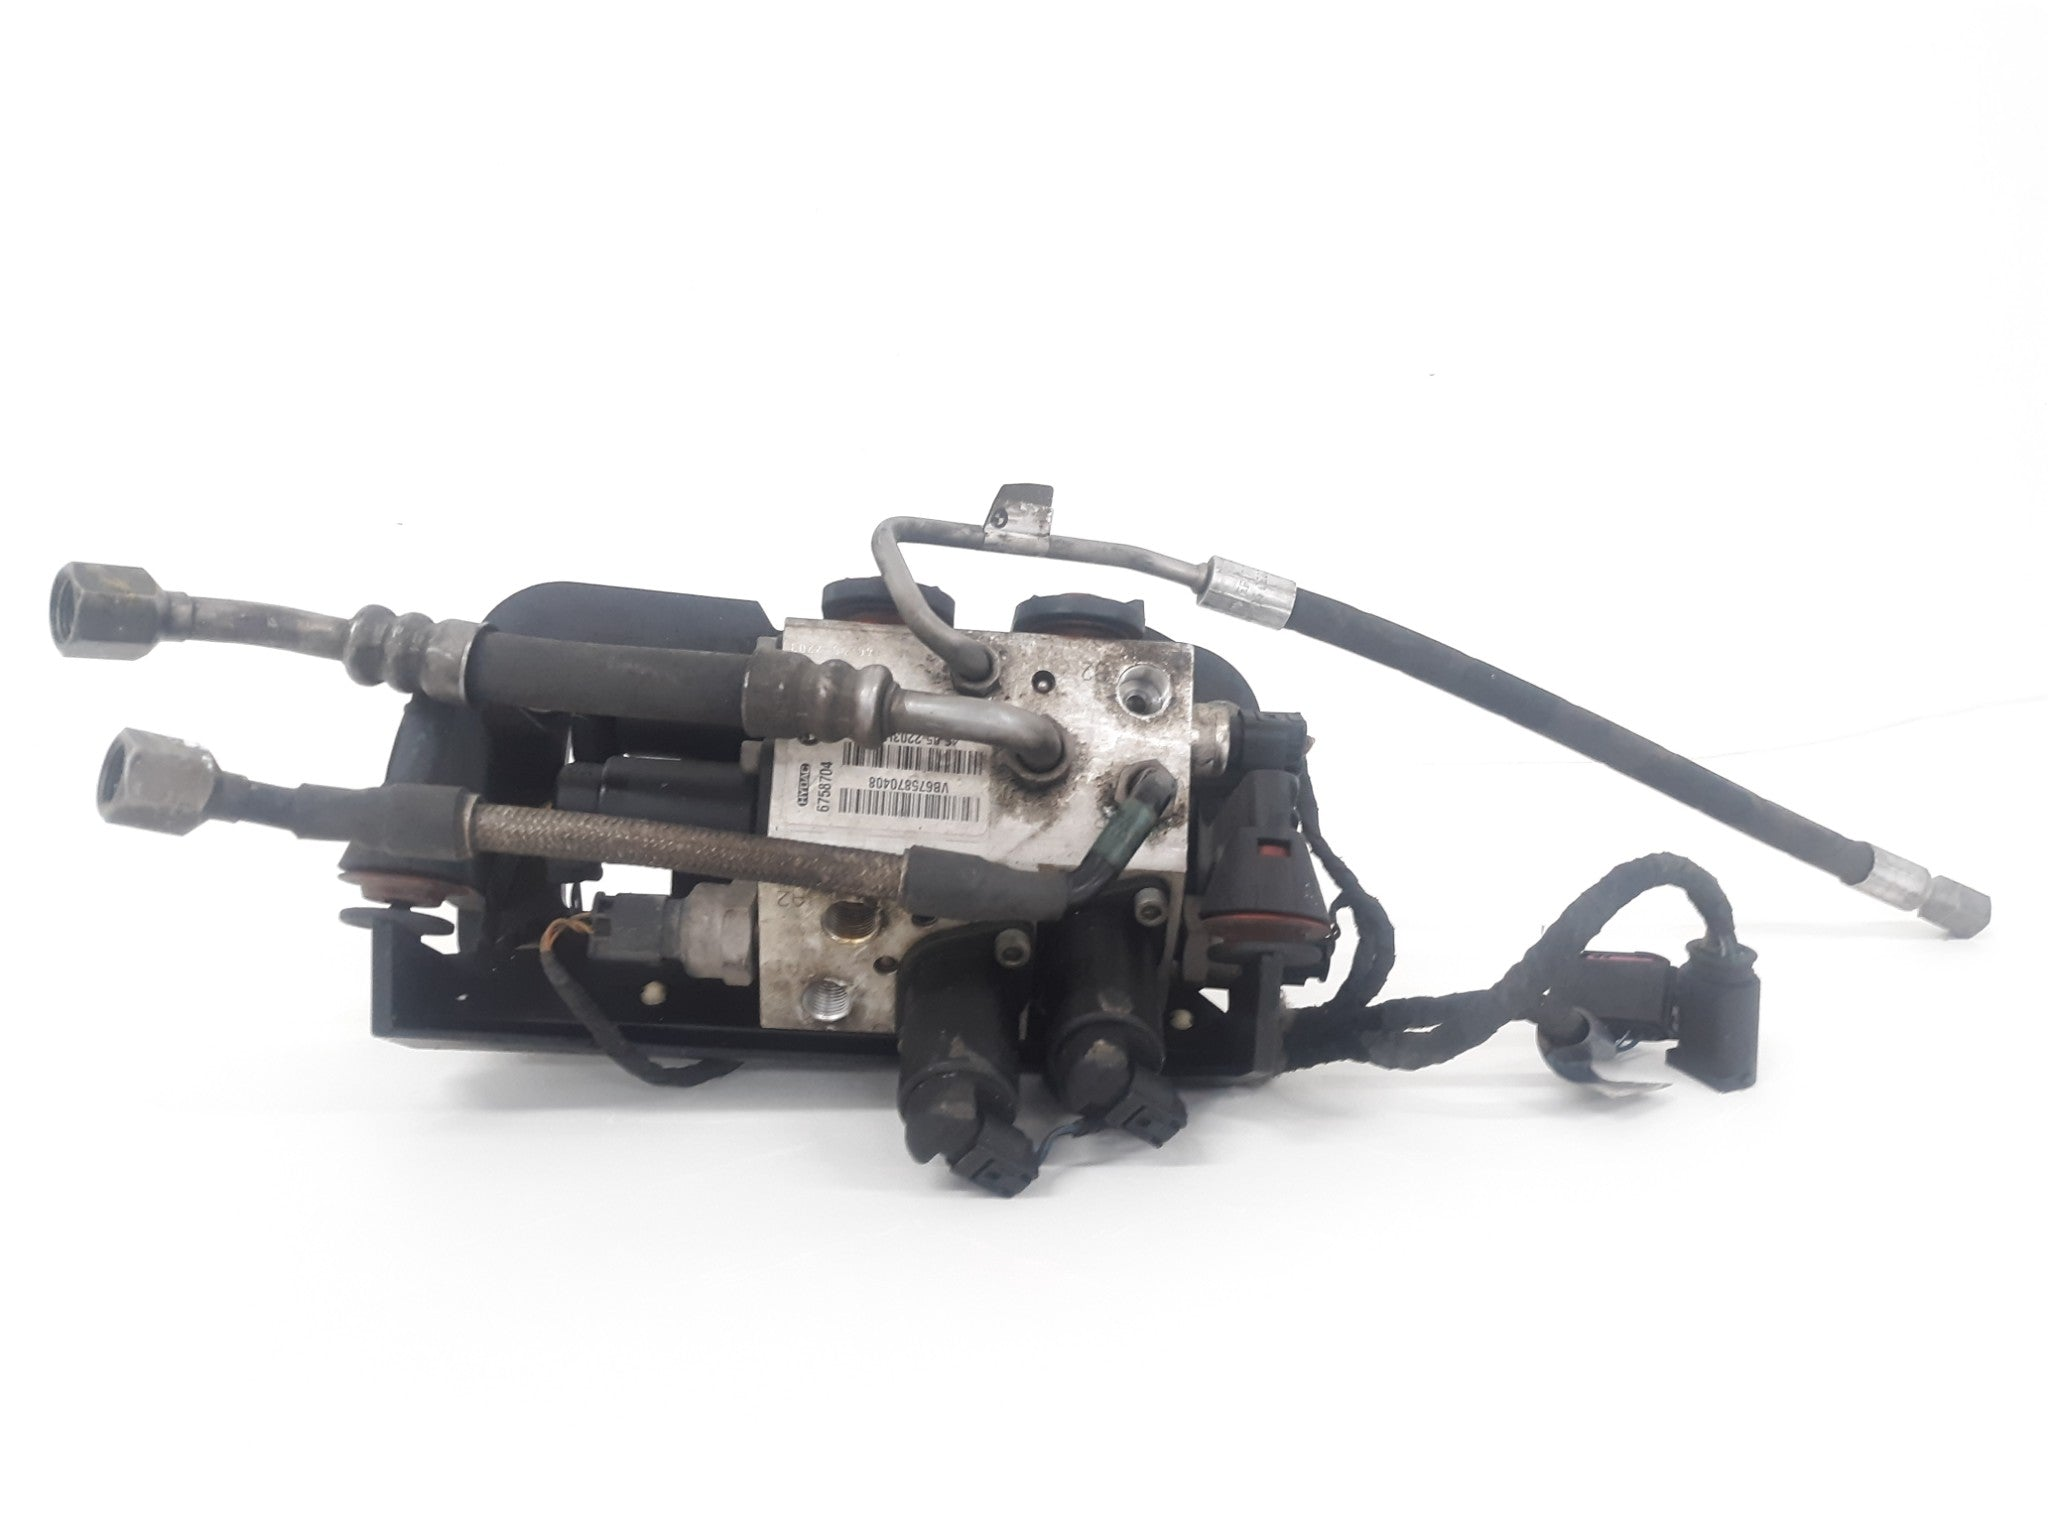 02-08 BMW E65 E66 750 745 ABS Hydraulic Dynamic Drive Brake Pump valve 6758704 - Click Receive Auto Parts